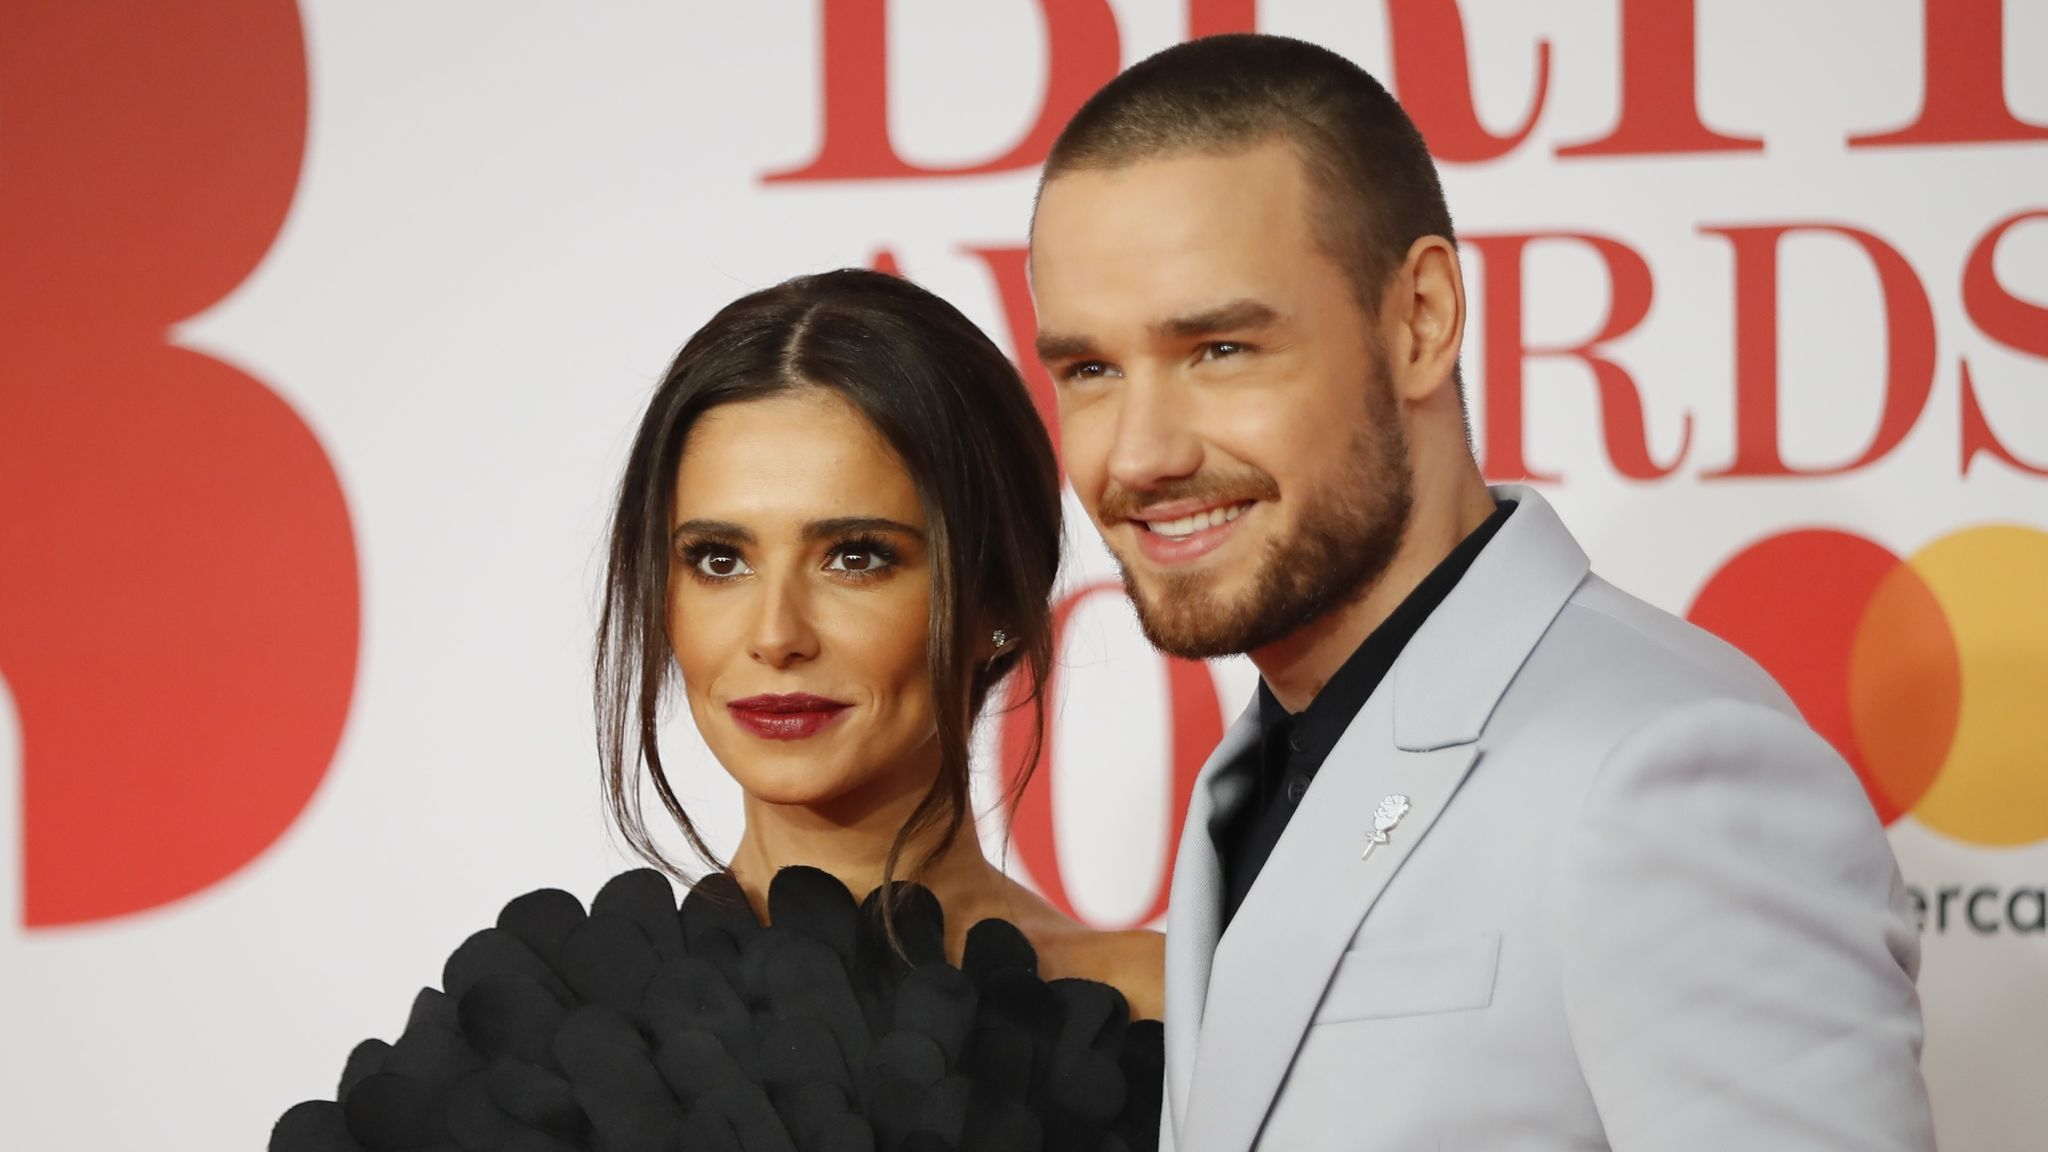 Cheryl Cole and Liam Payne at the Brit Awards in 2018